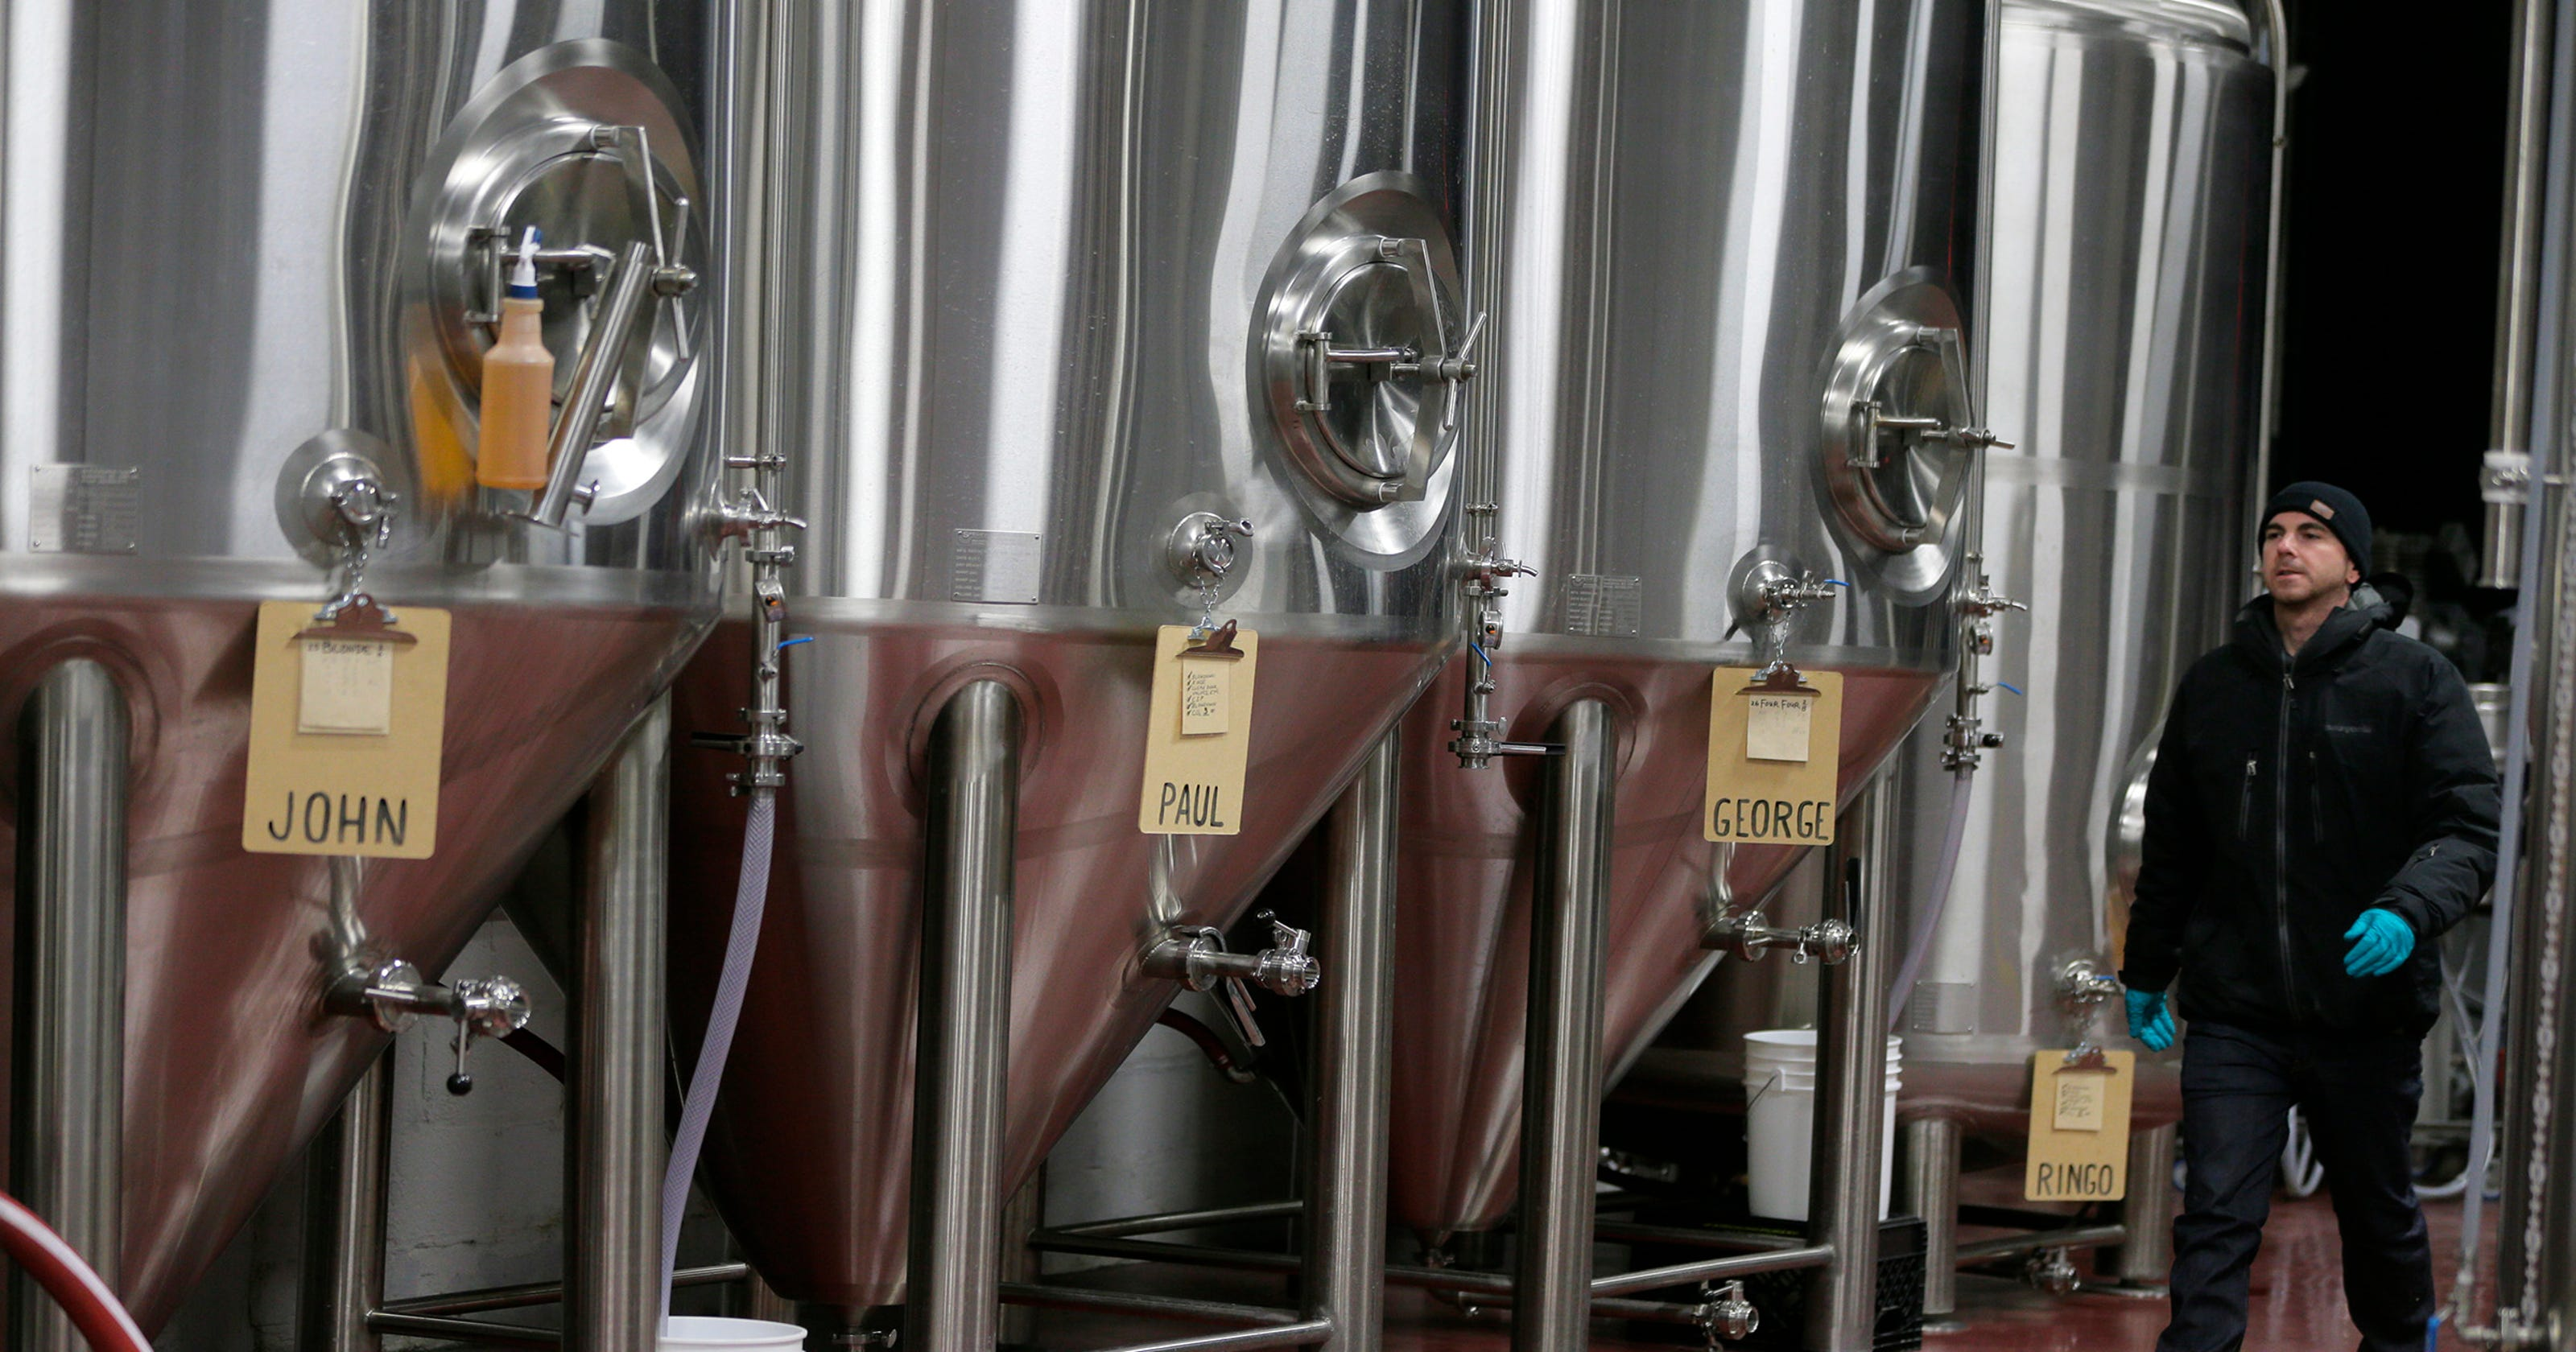 New Jersey cracks down on events hosted by microbreweries